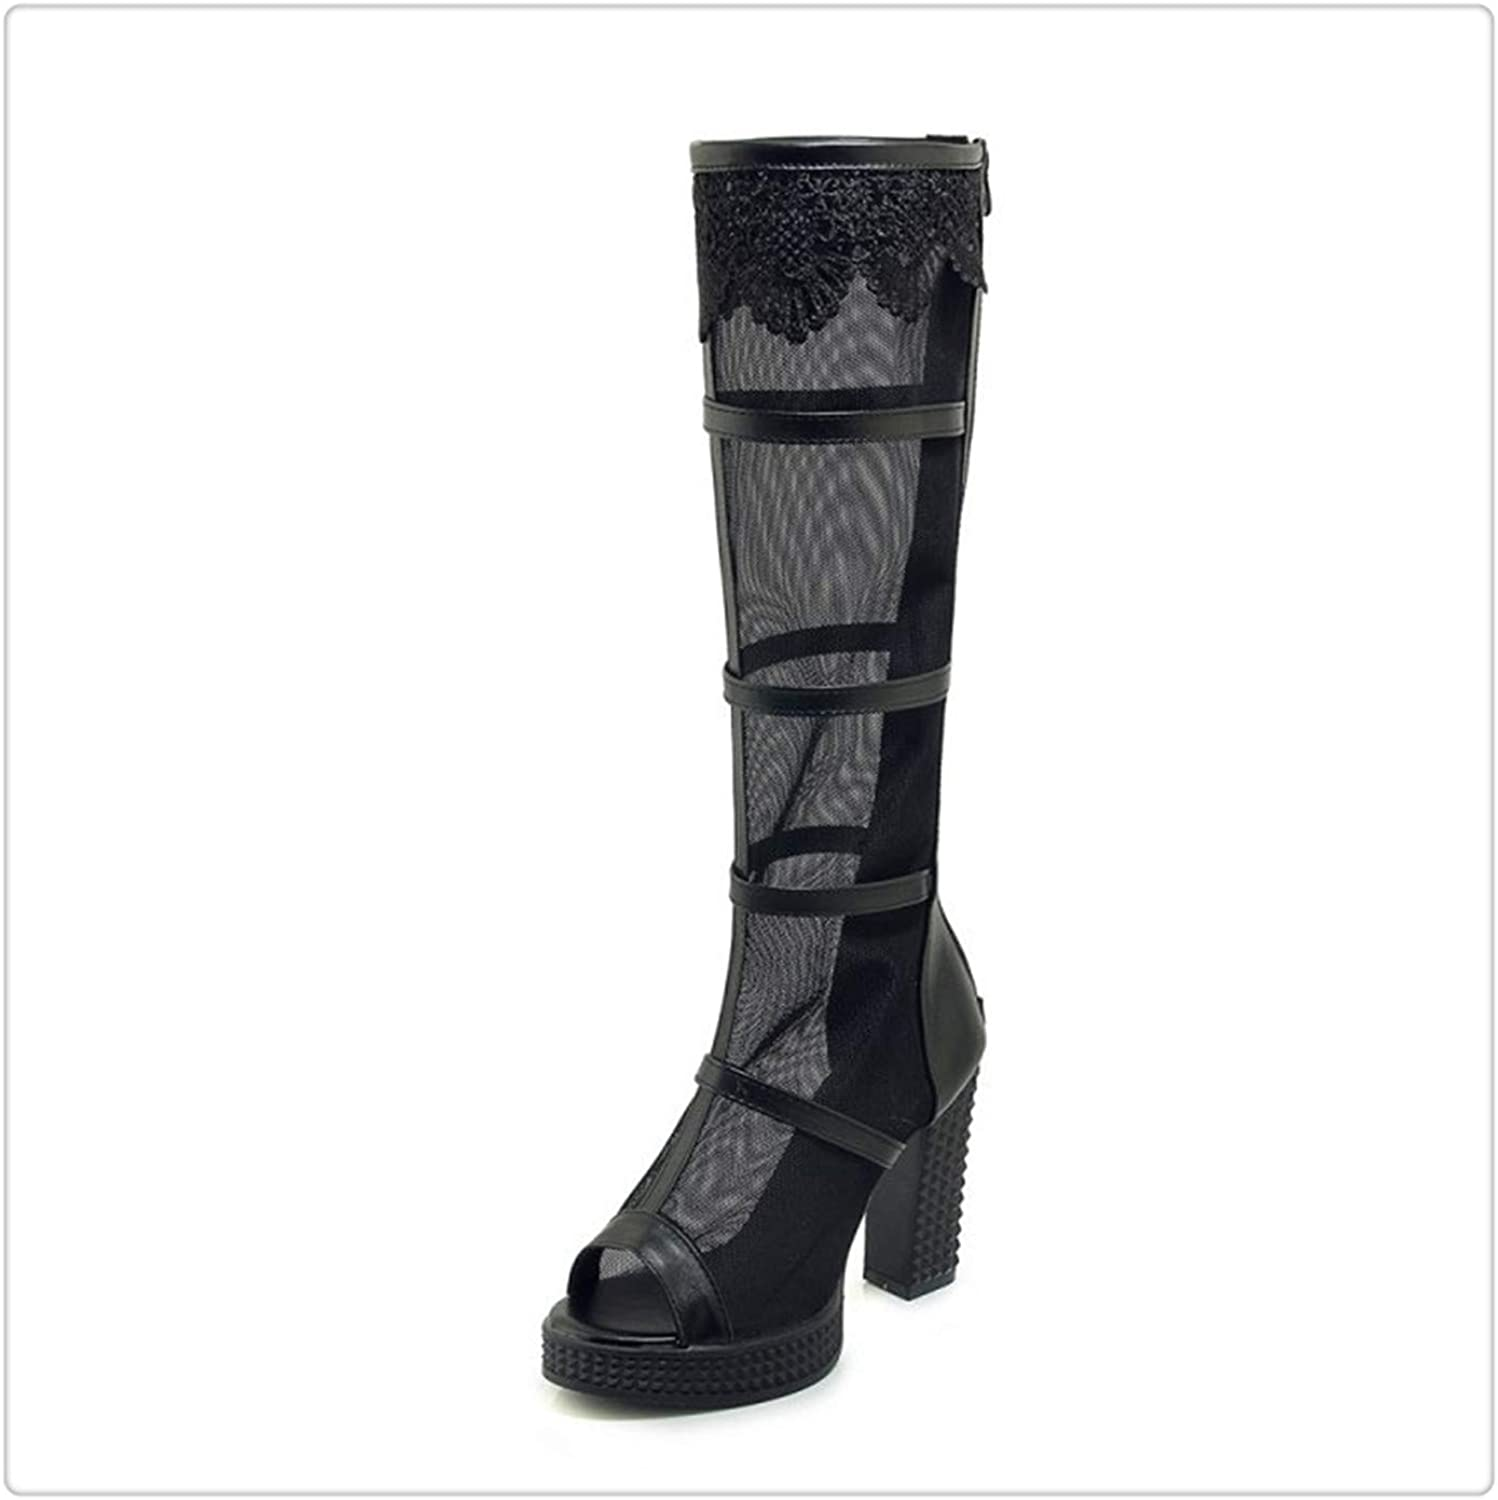 QUGKOP& High Heels Gladiator Sandals Women Summer Mesh Knee High Boots Party shoes